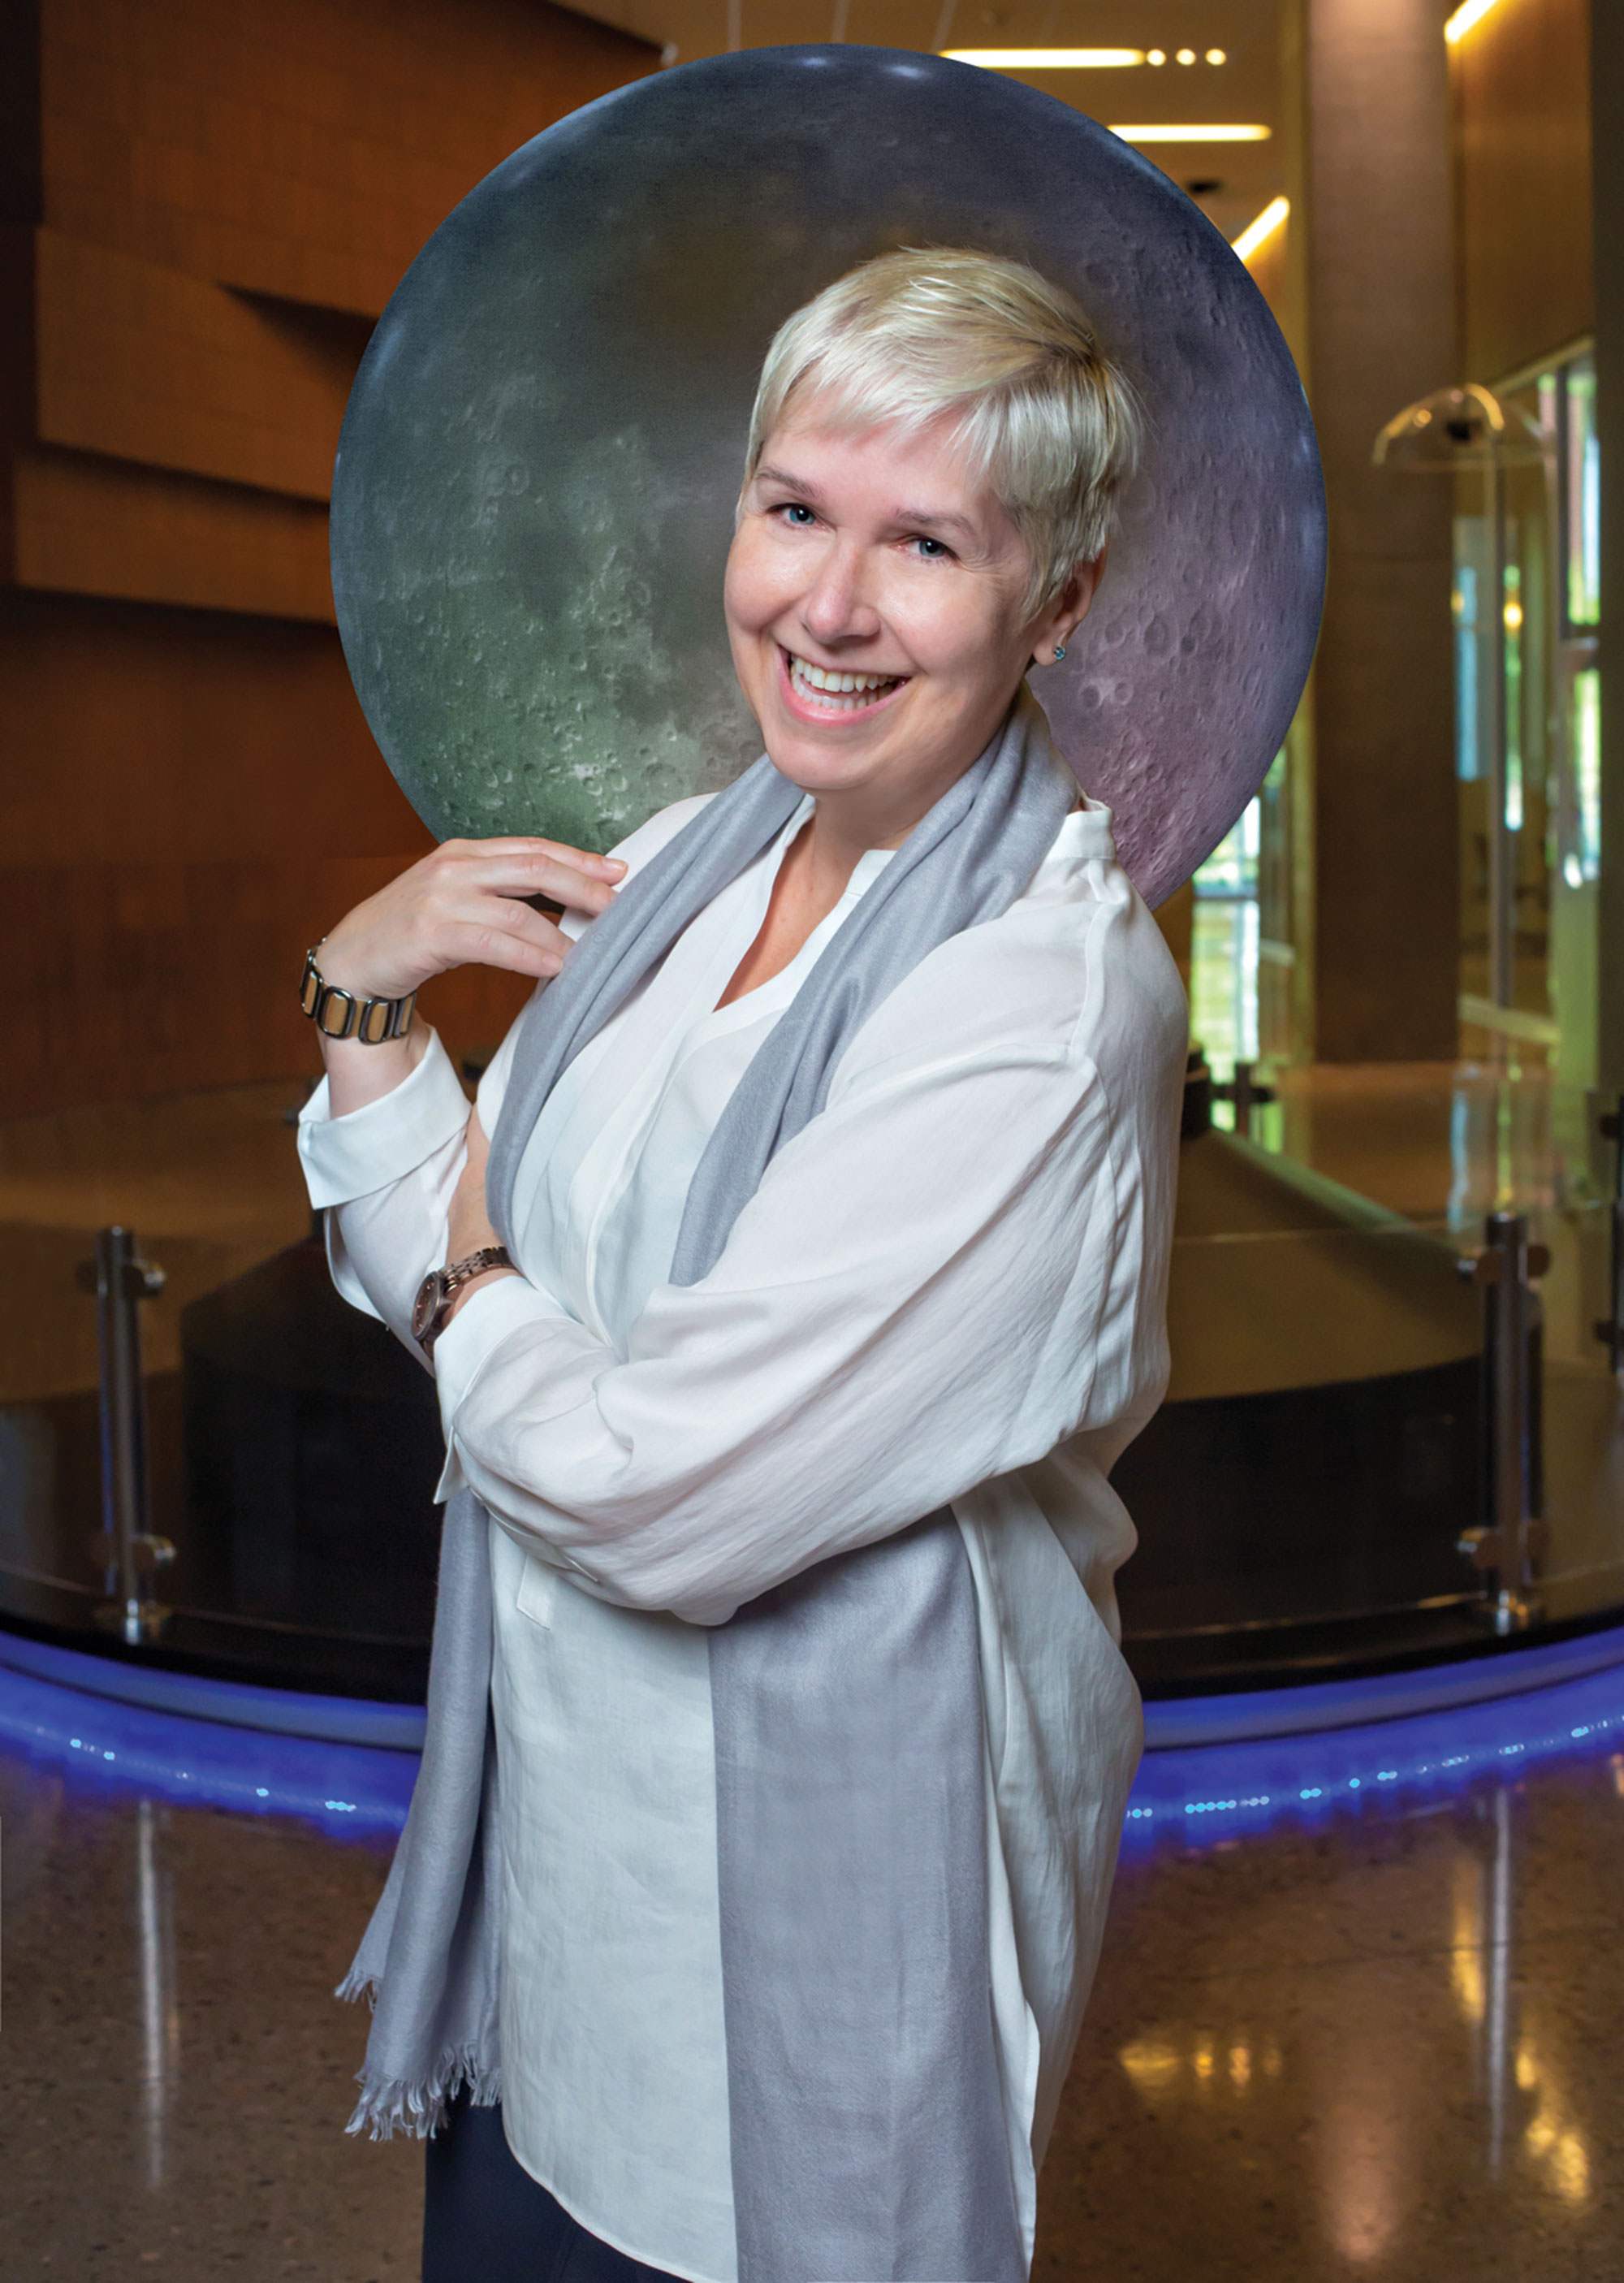 ASU School of Earth and Space Exploration director Lindy Elkins-Tanton hopes to unlock the secret of the Earth's core with the Psyche mission, a collaboration with NASA; Photo by Carrie Evans